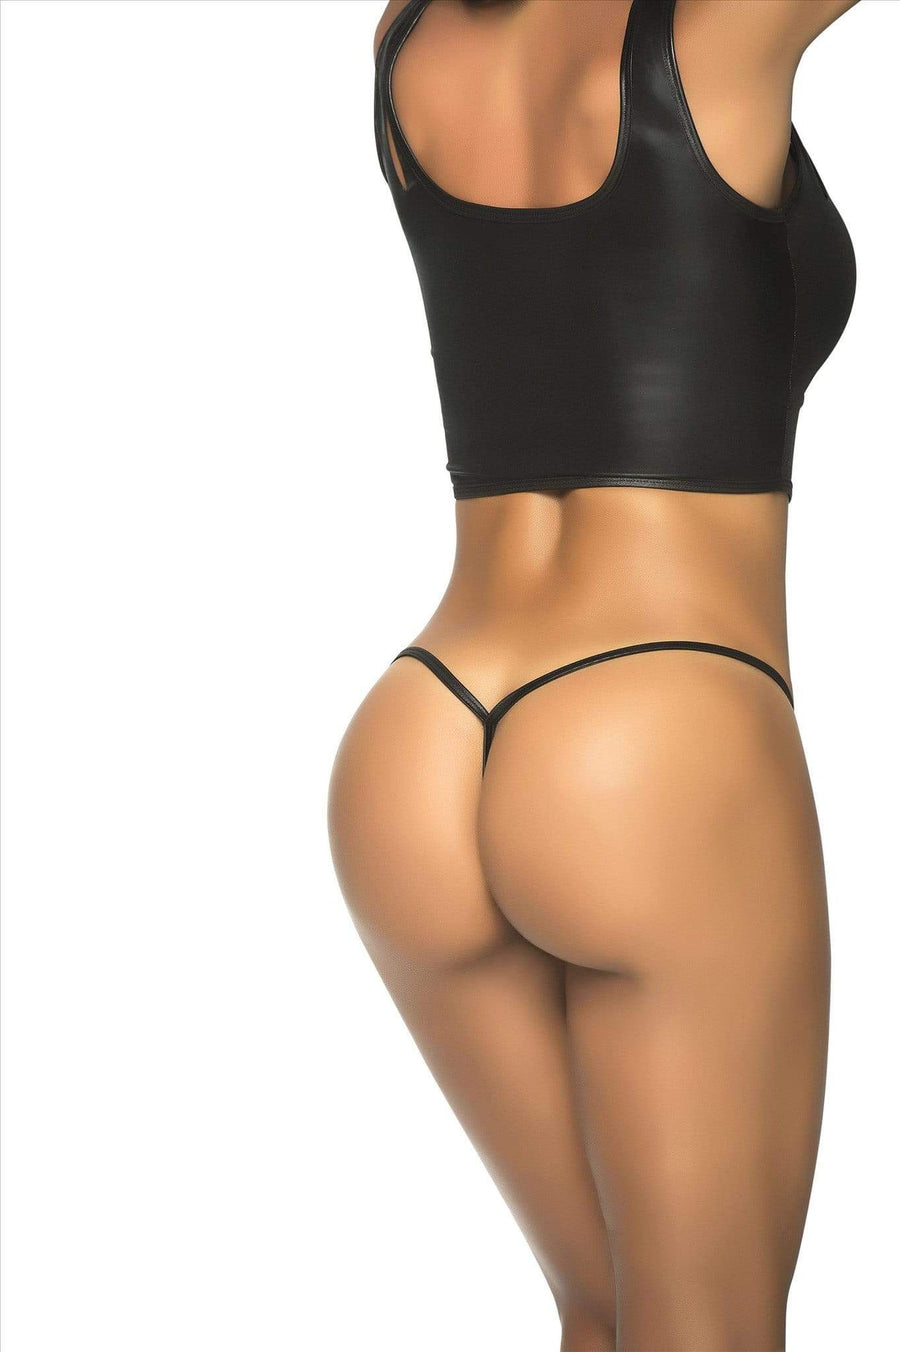 espiral S/M / Wet Black Wet Black Y-Back Thong G-String Panty Bottom (Many Color Available) ESP-1048 Apparel & Accessories > Clothing > Underwear & Socks > Underwear